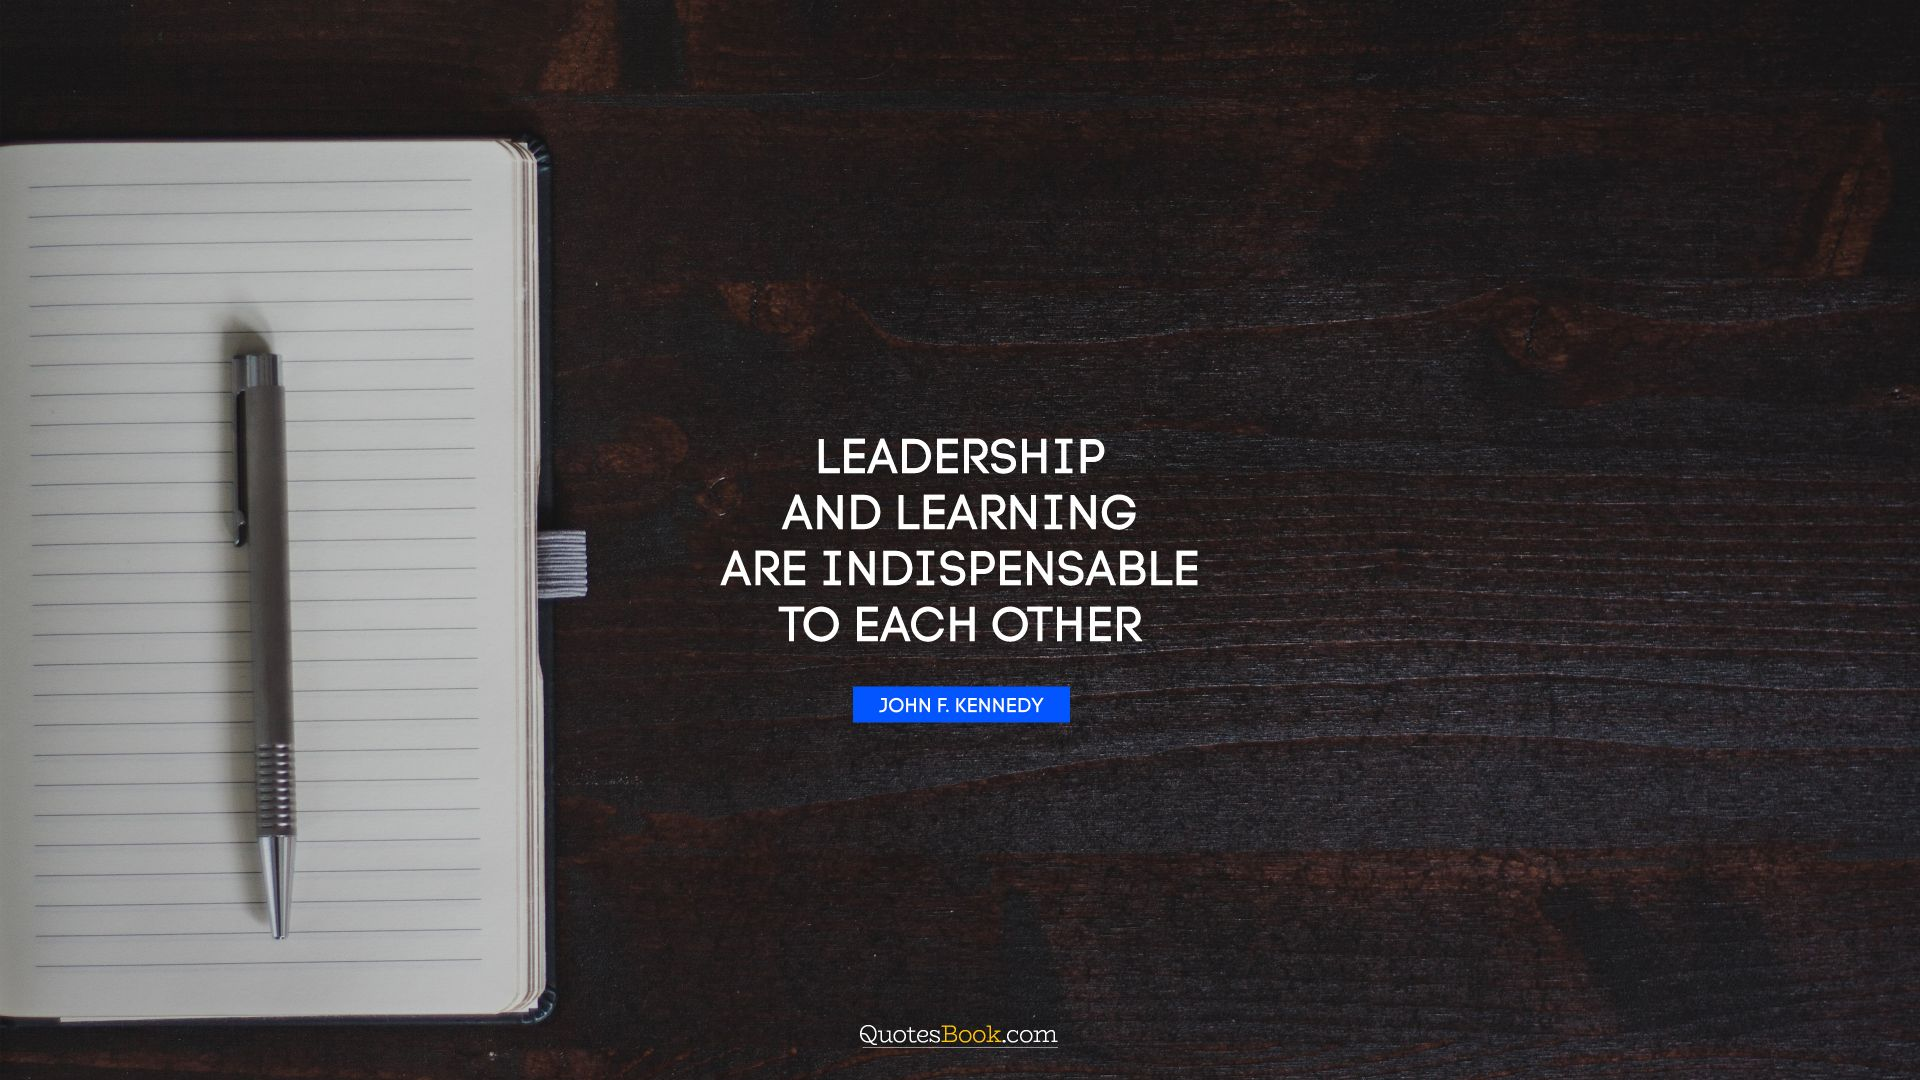 Leadership and learning are indispensable to each other. - Quote by John F. Kennedy